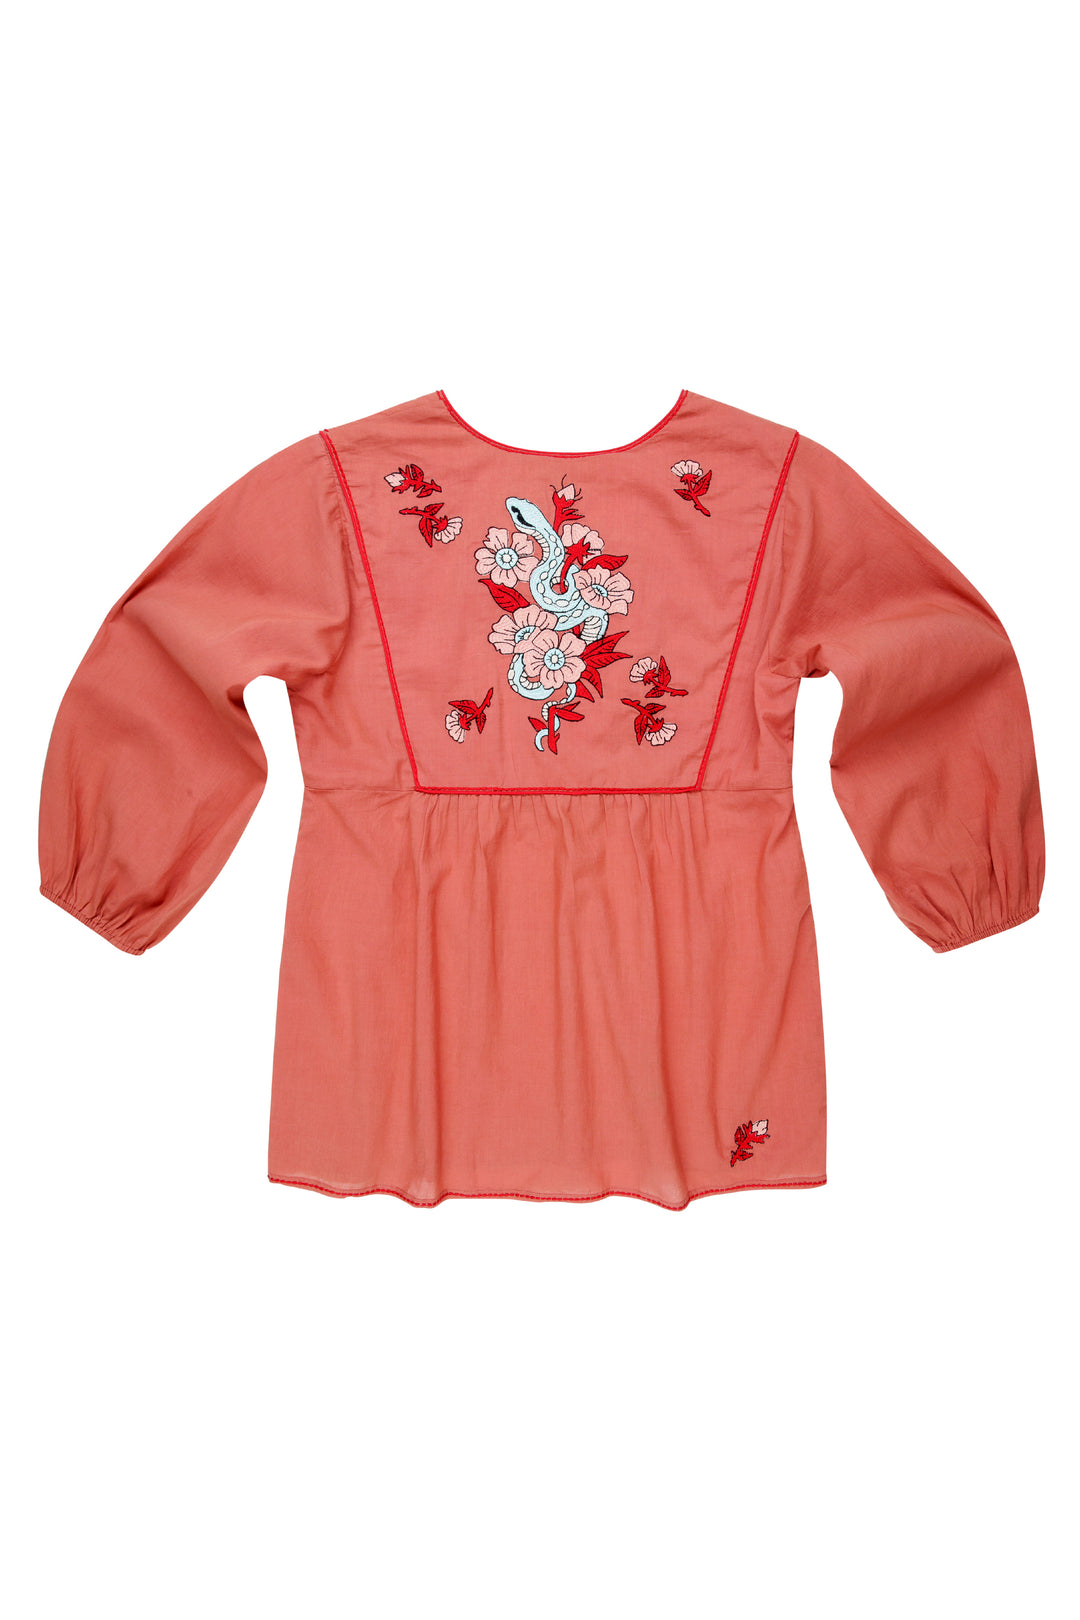 final sale: Tainted Love Embroidered Blouse Ochre